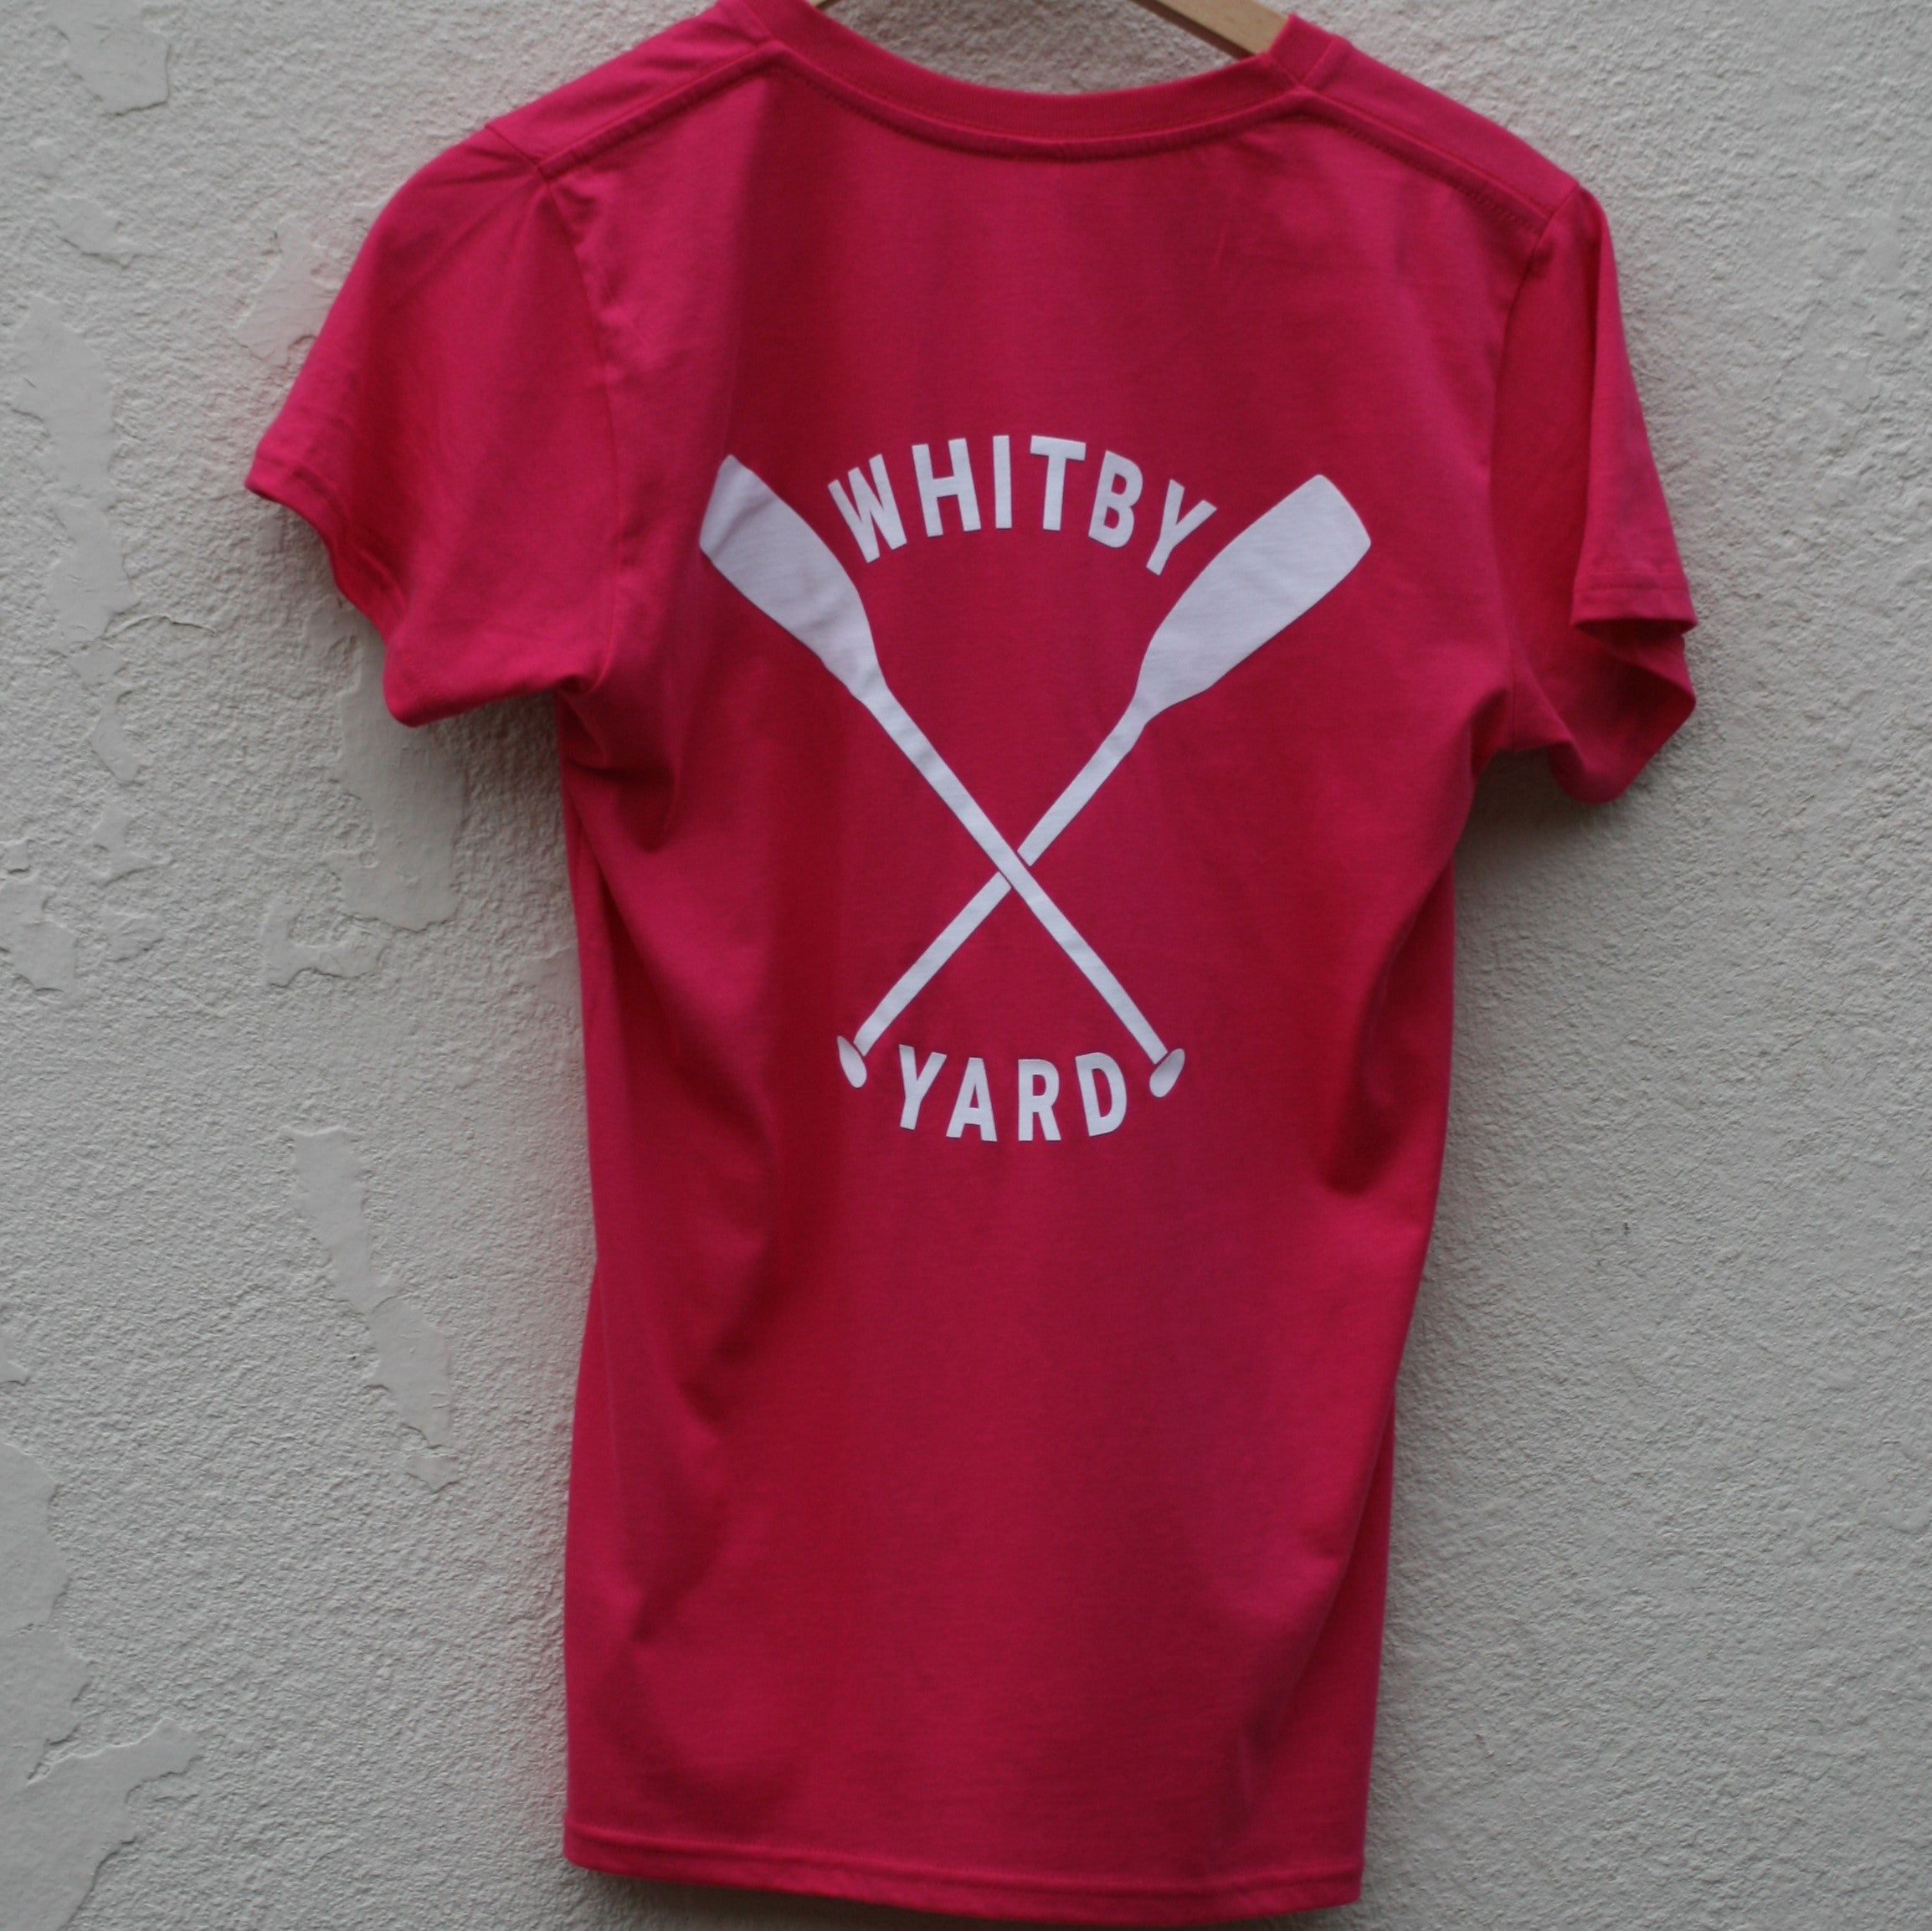 Womens Oars T shirt in Bright Pink